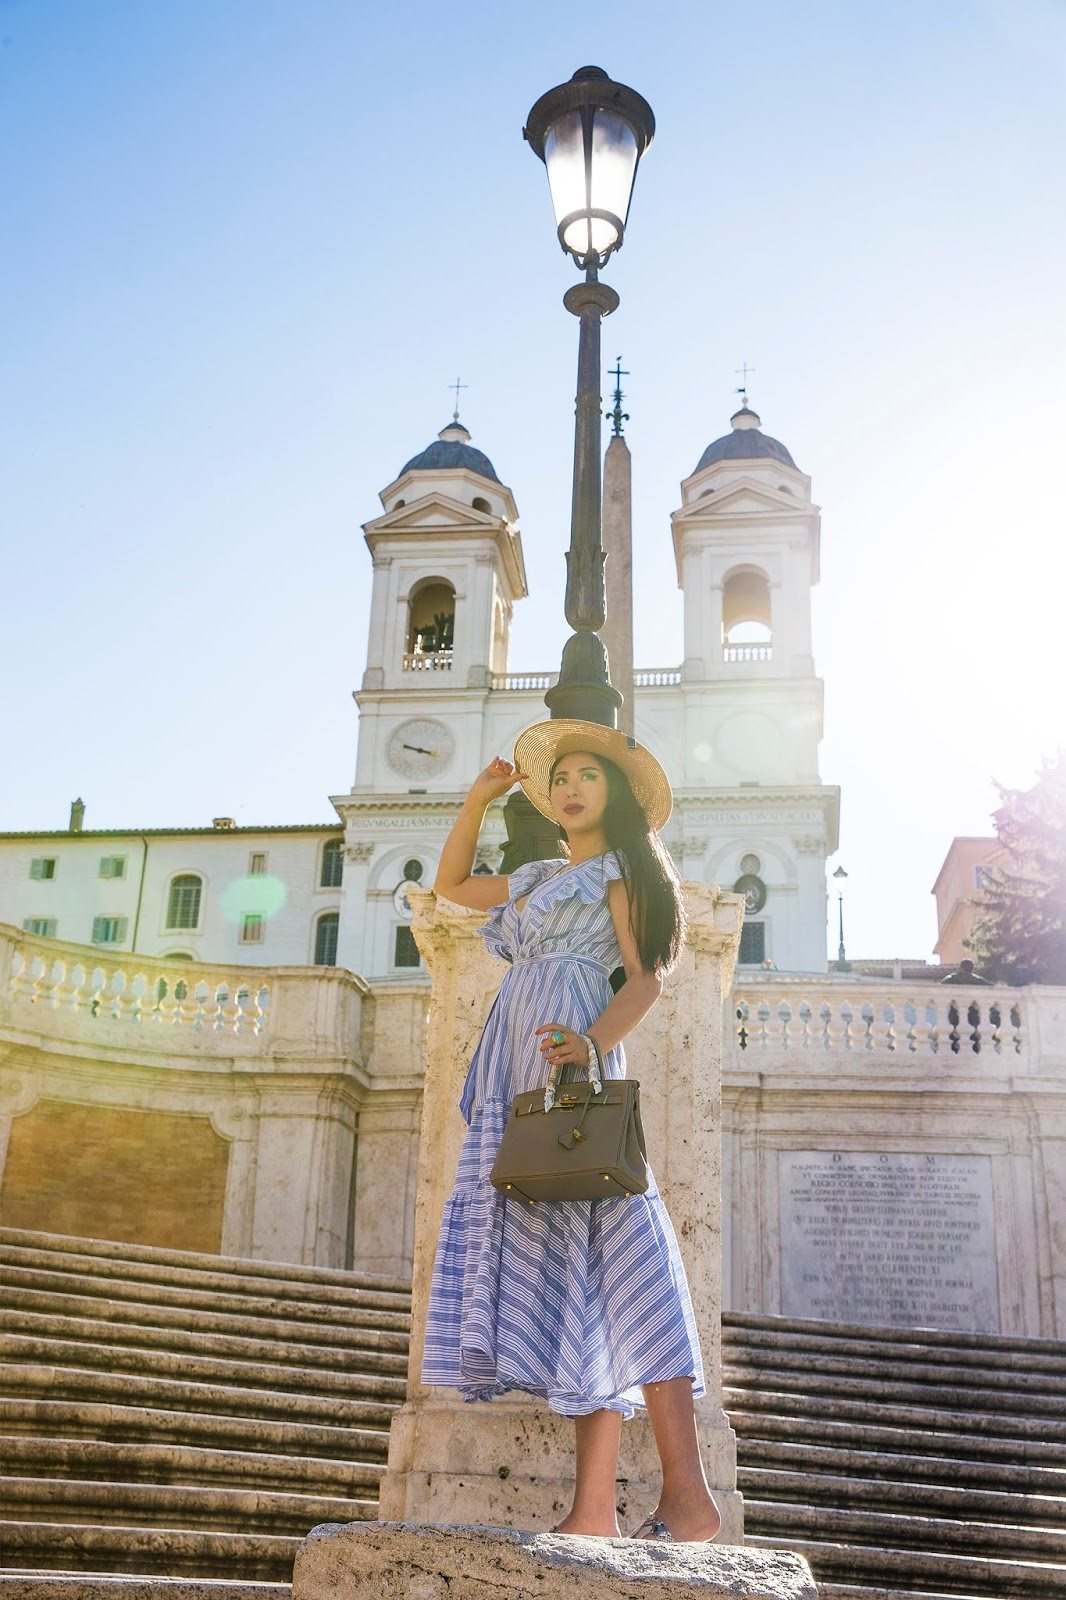 Rome, Italy by Posh, Broke, & Bored - Spanish Steps